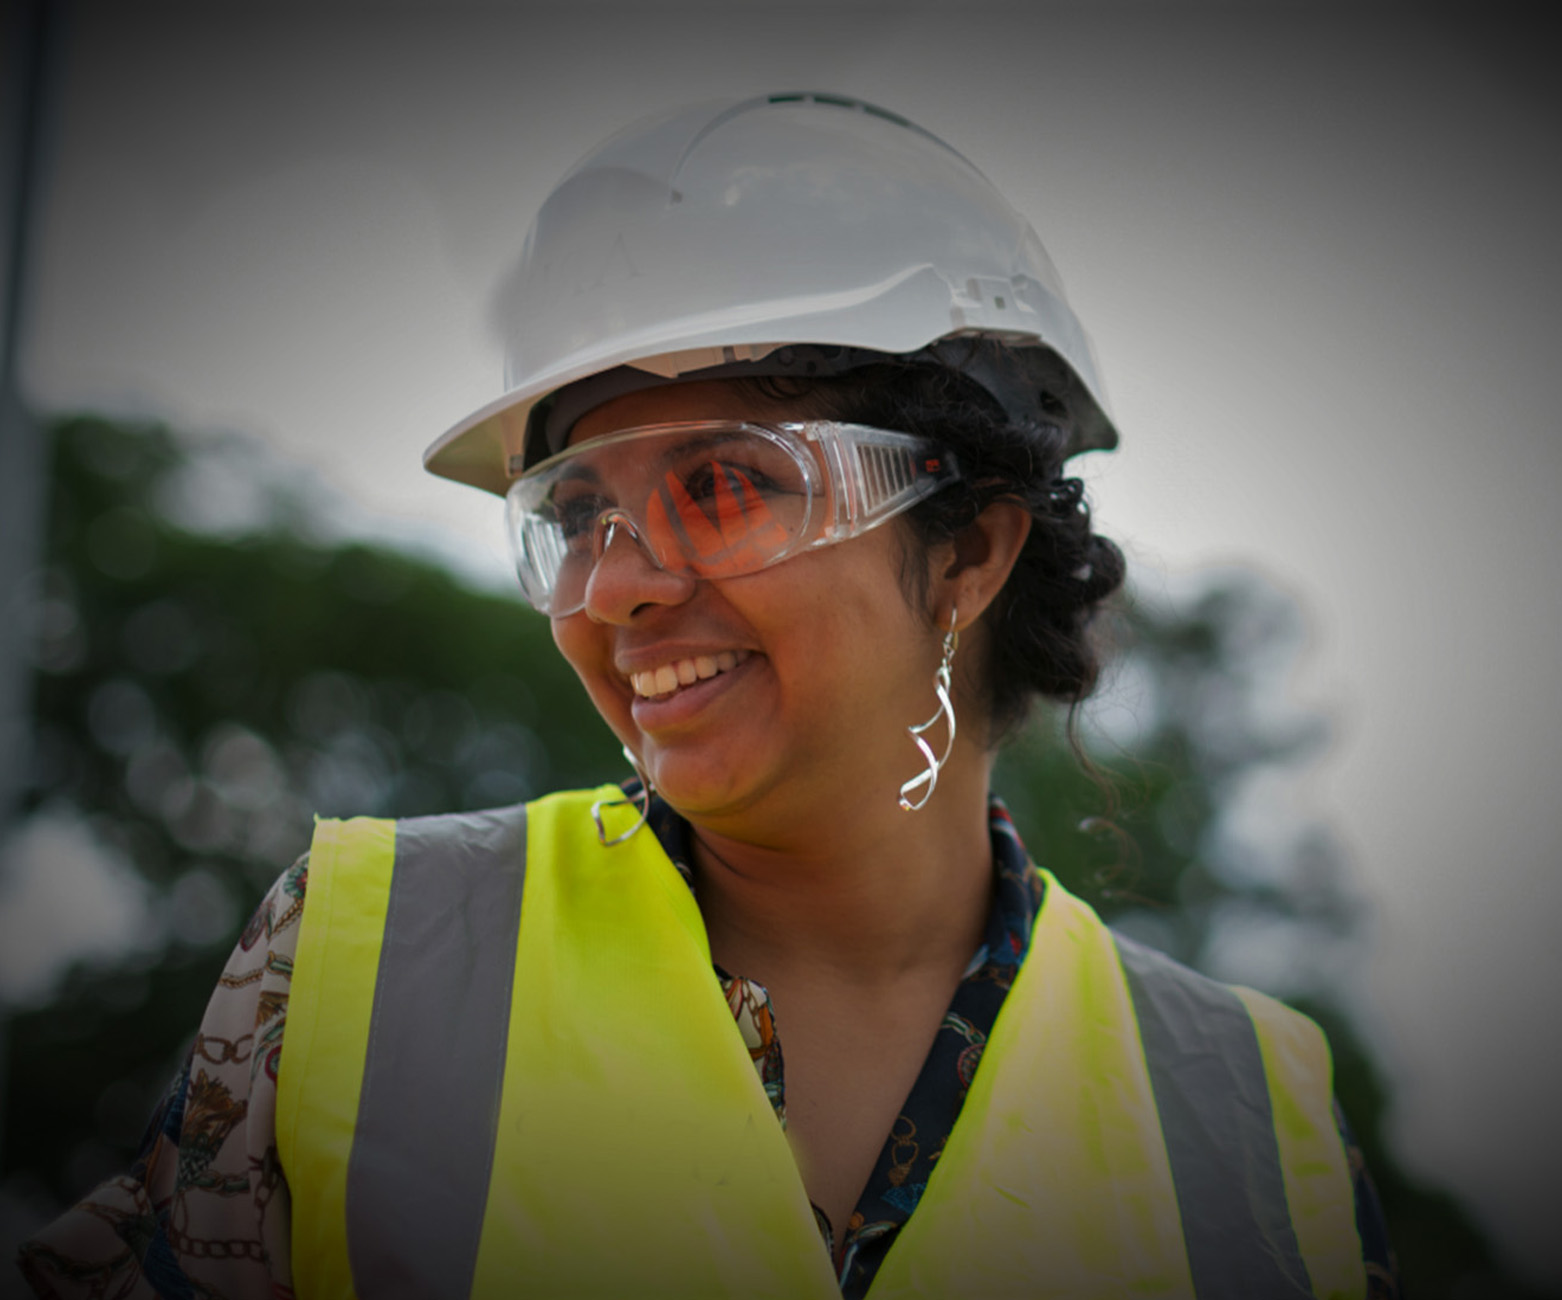 Image of a female construction worker.